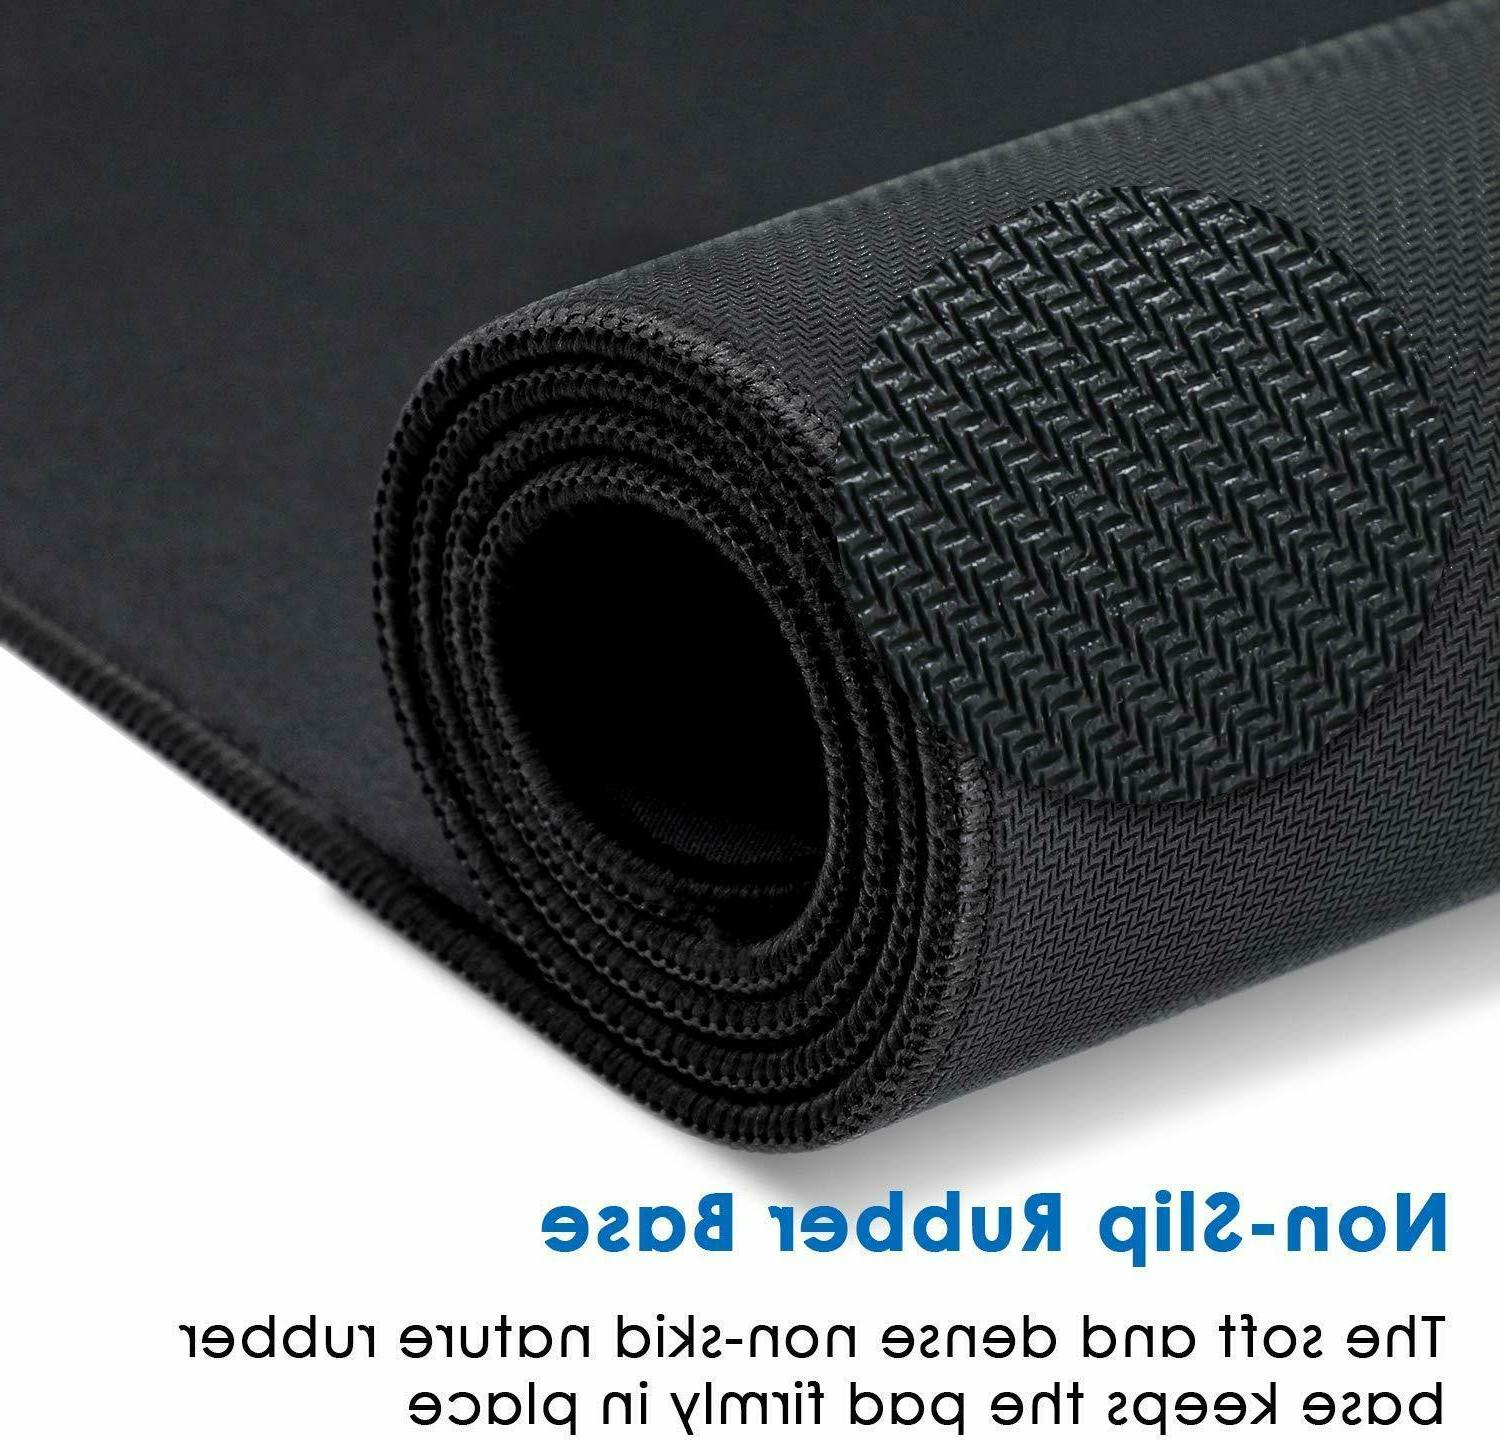 Large Extended Pad Edges Waterproof 31.5x11.8